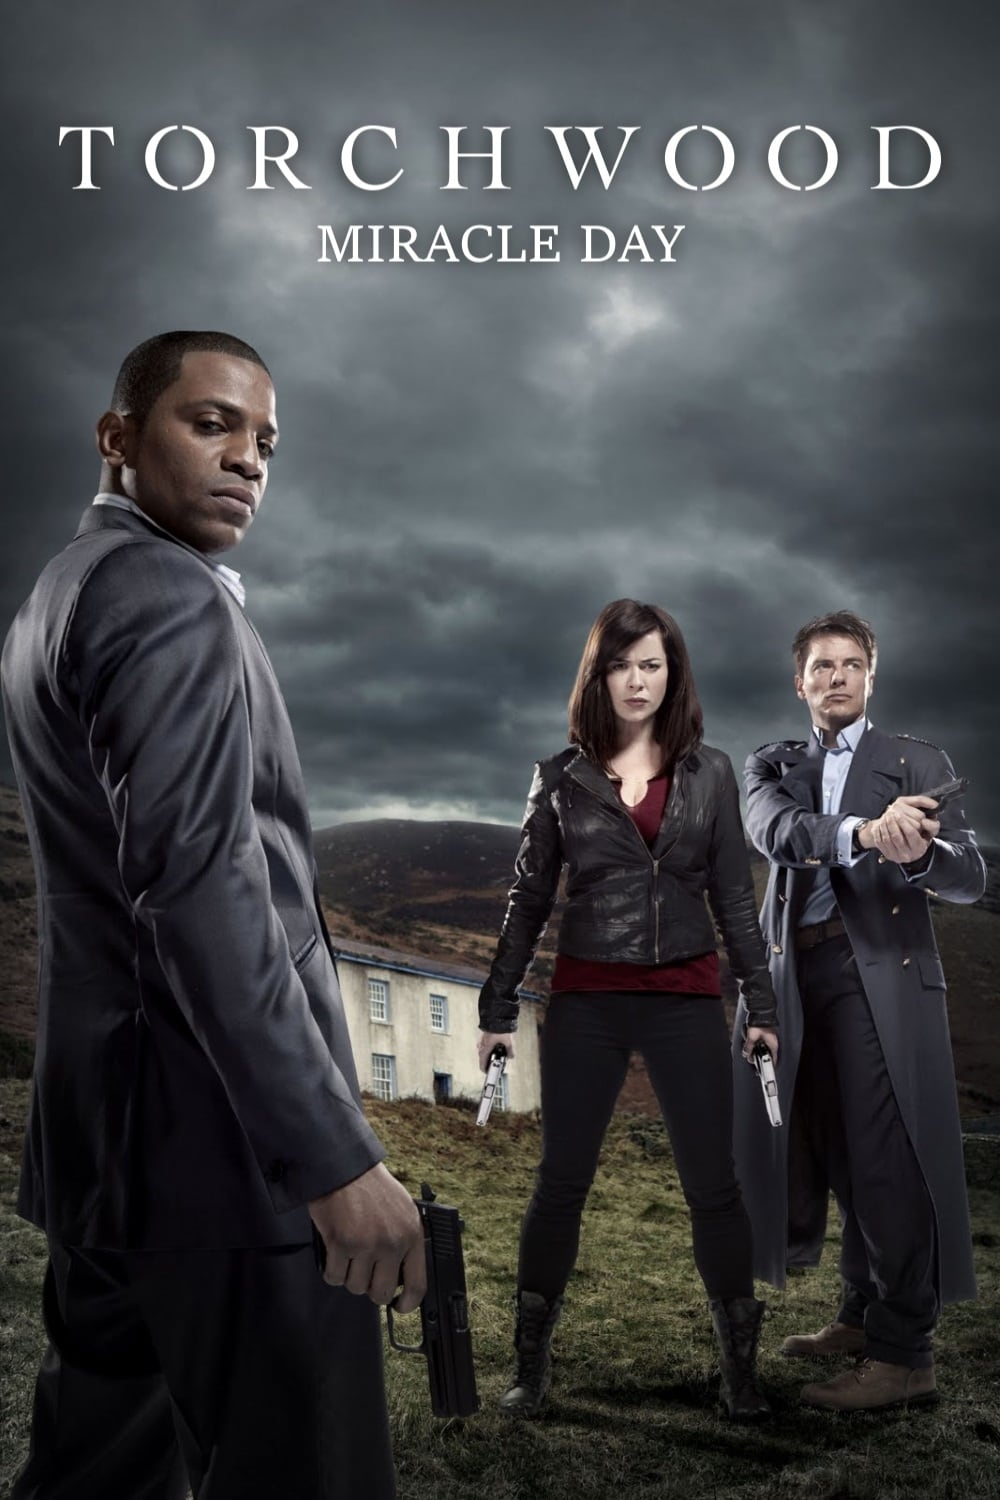 Torchwood Season 4